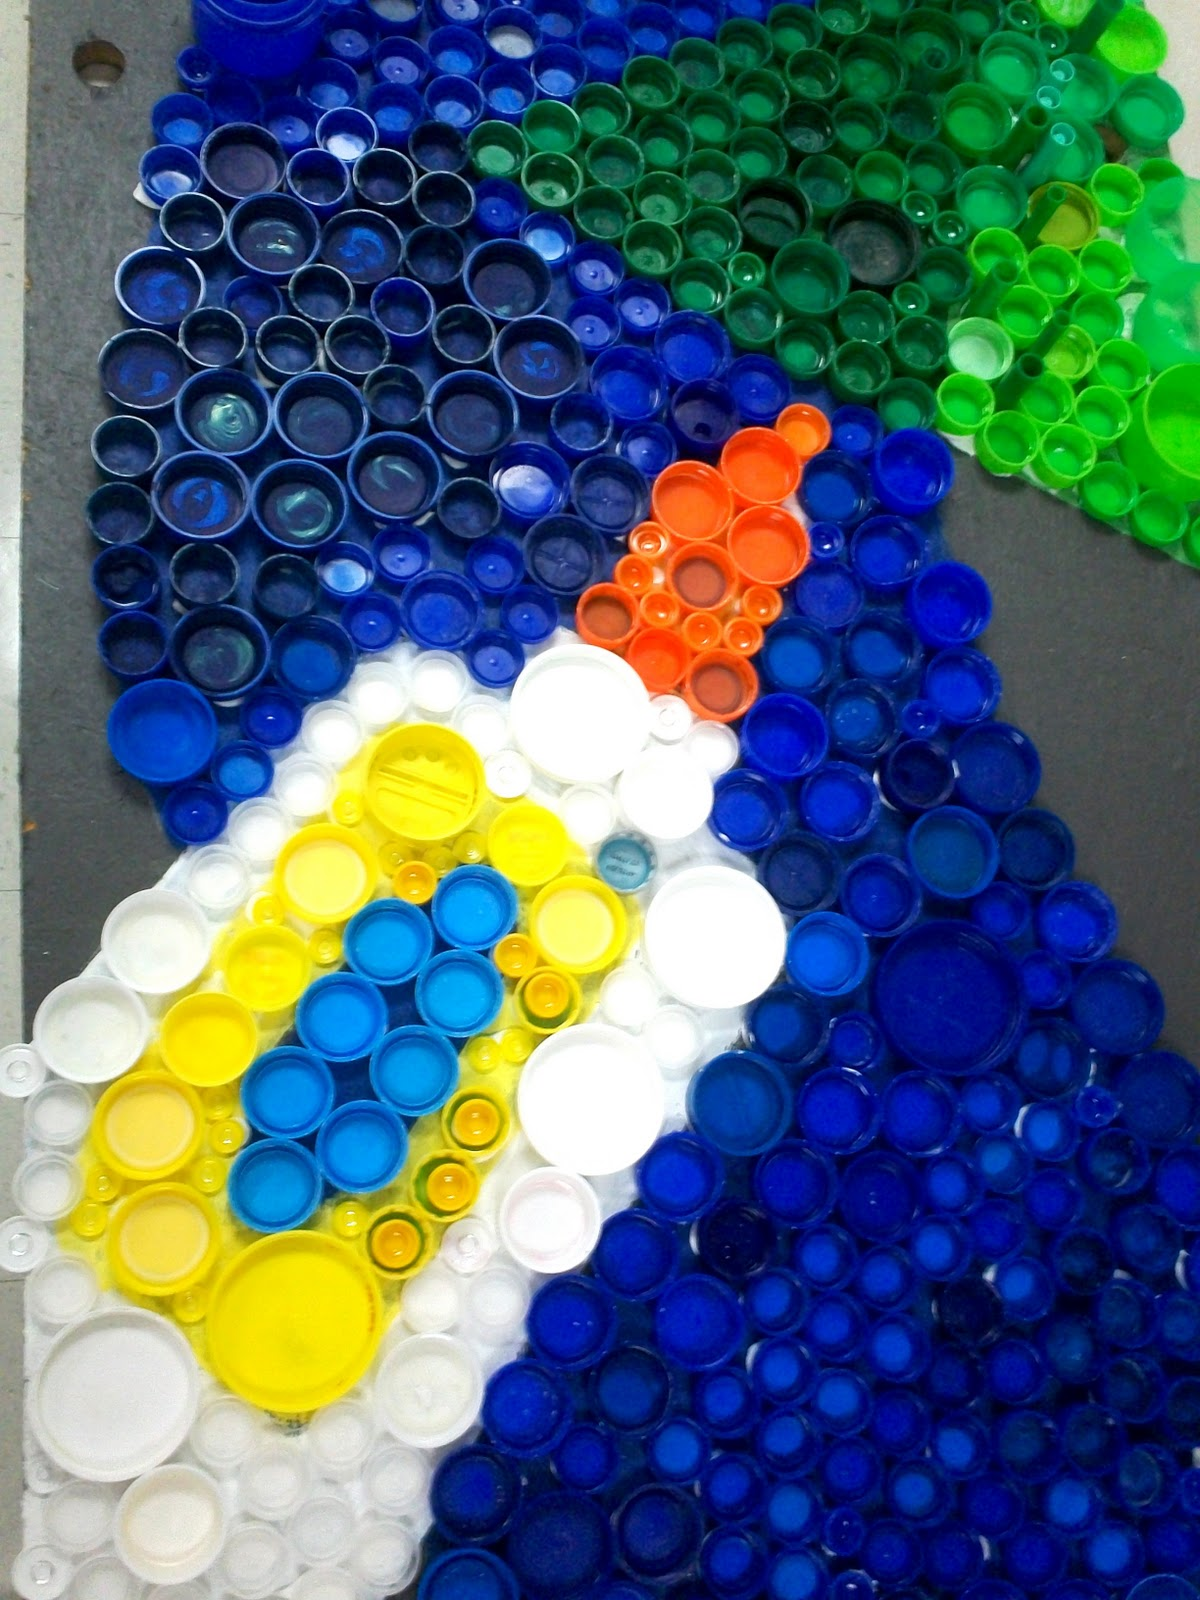 Art with mr e bottle cap mural in progress for Pictures of bottle caps